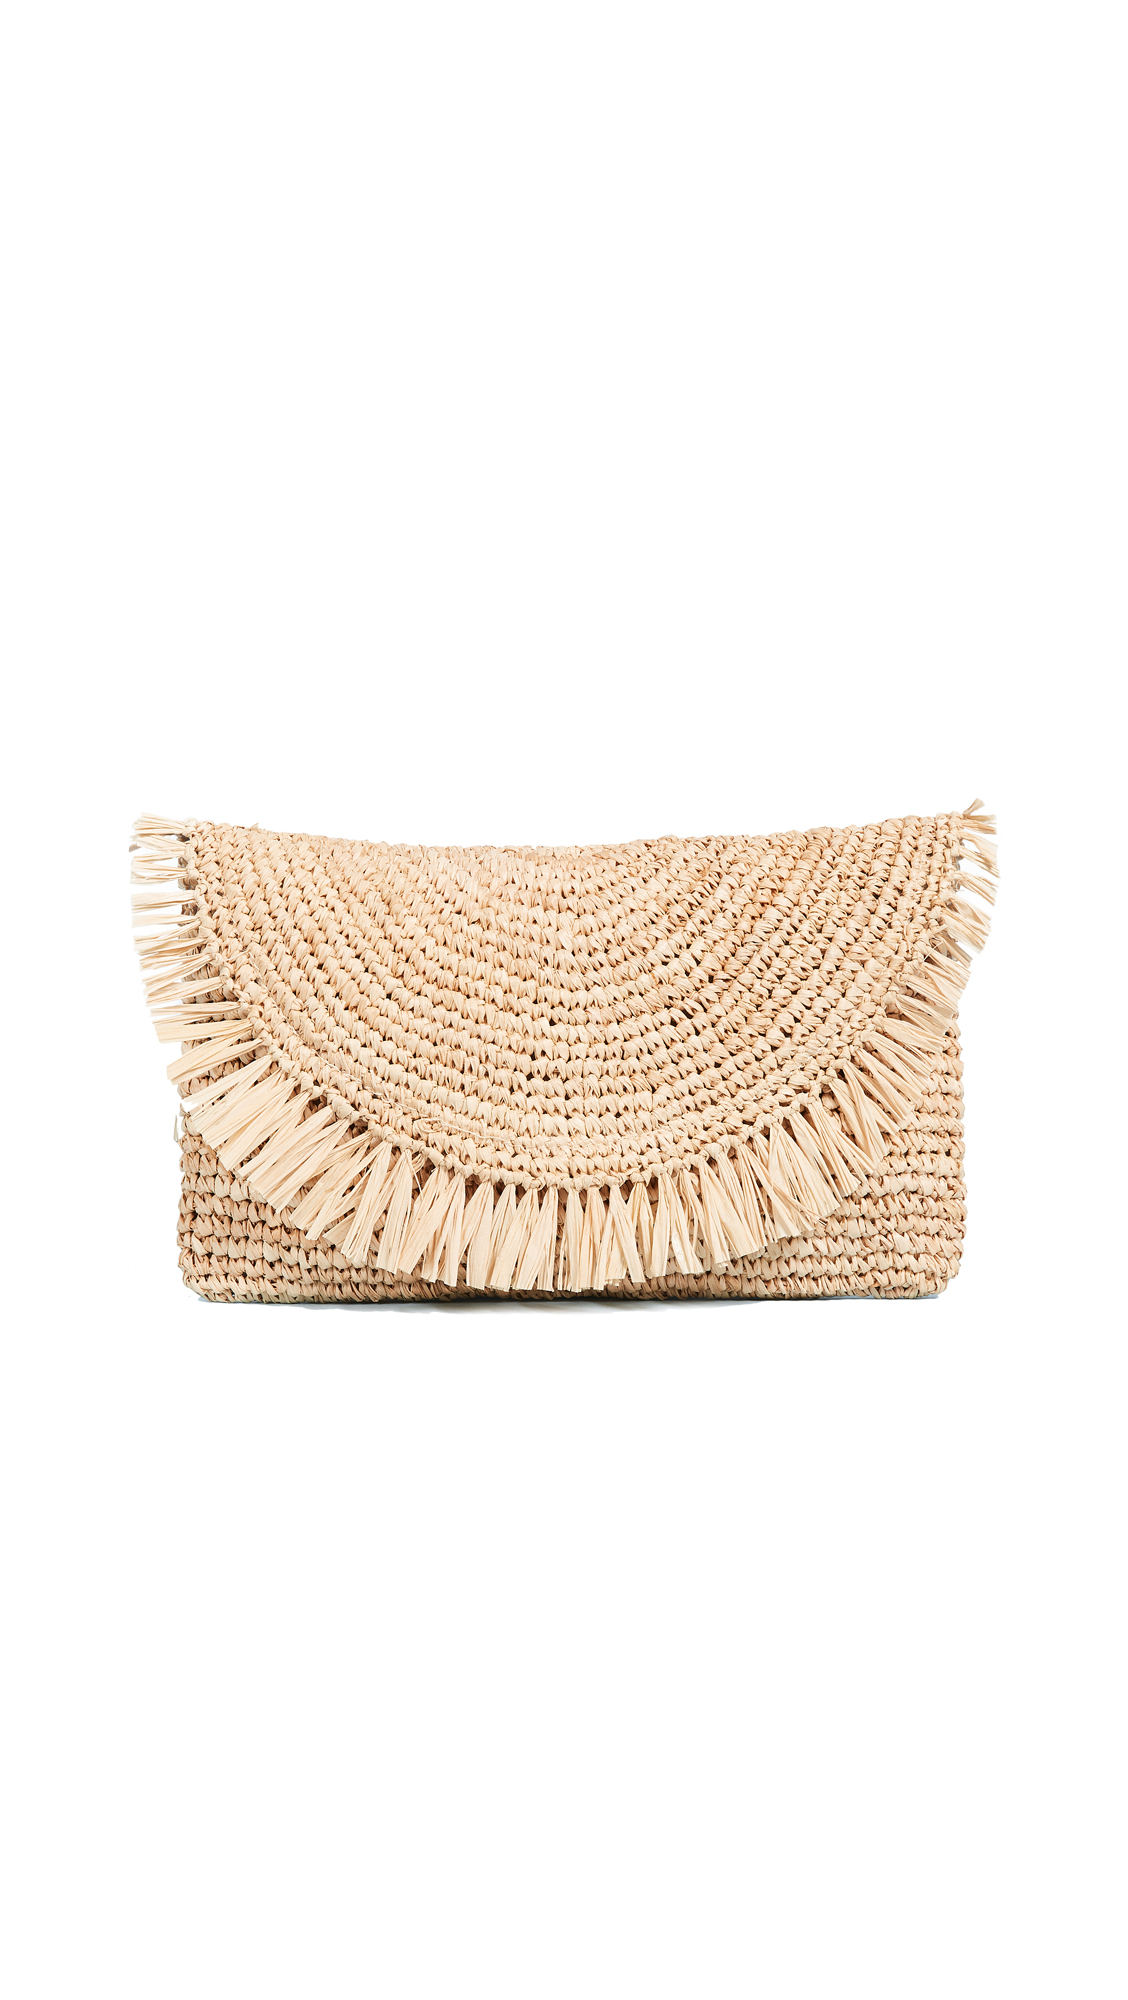 Hat Attack Sunshine Straw Clutch Shopbop Save Up To 25 Use Code Island Natural More18